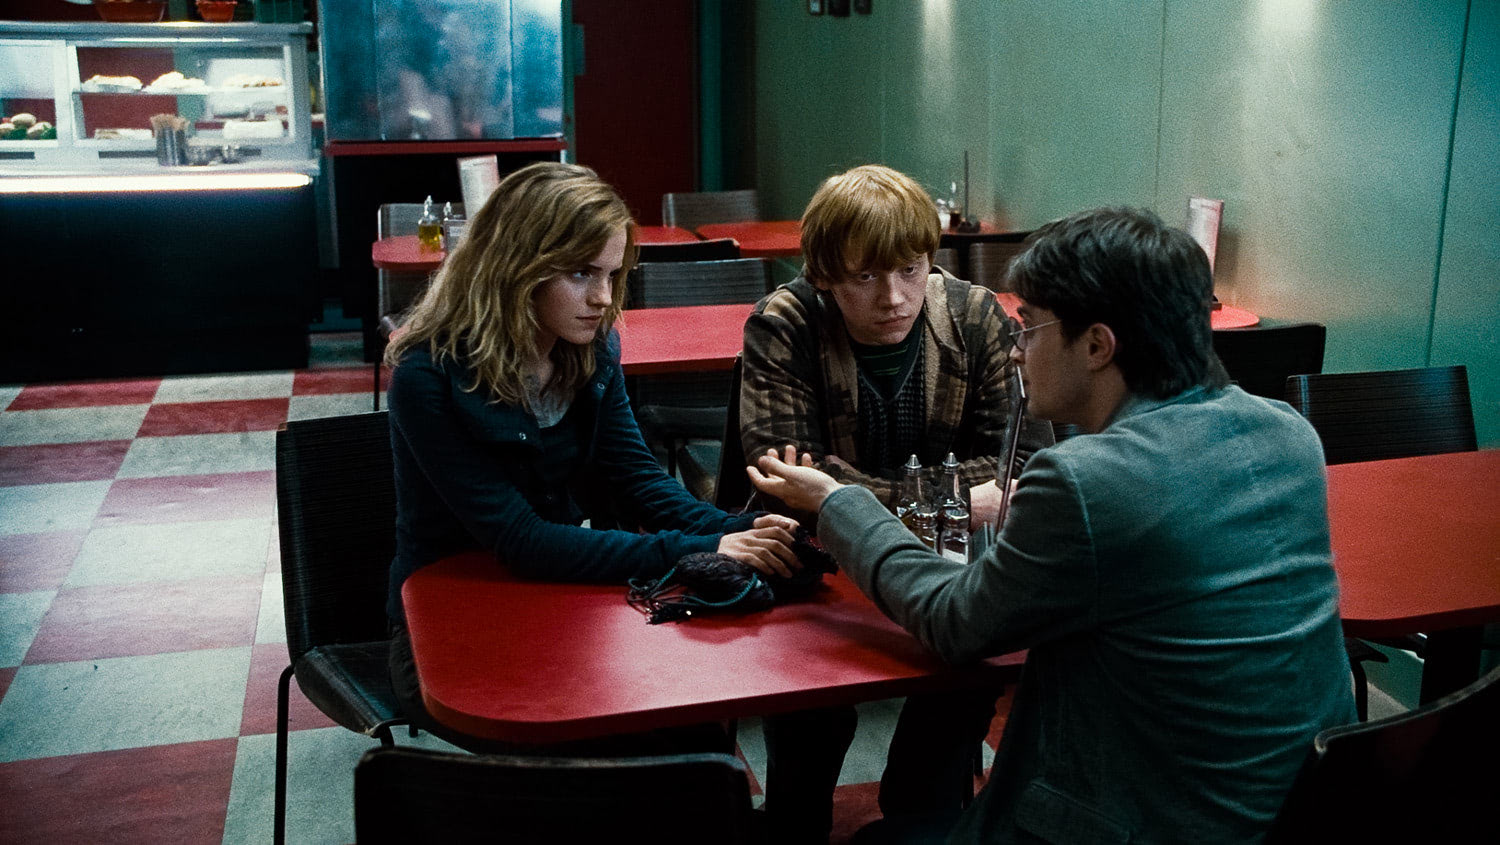 Hermione, Ron and Harry in a cafe